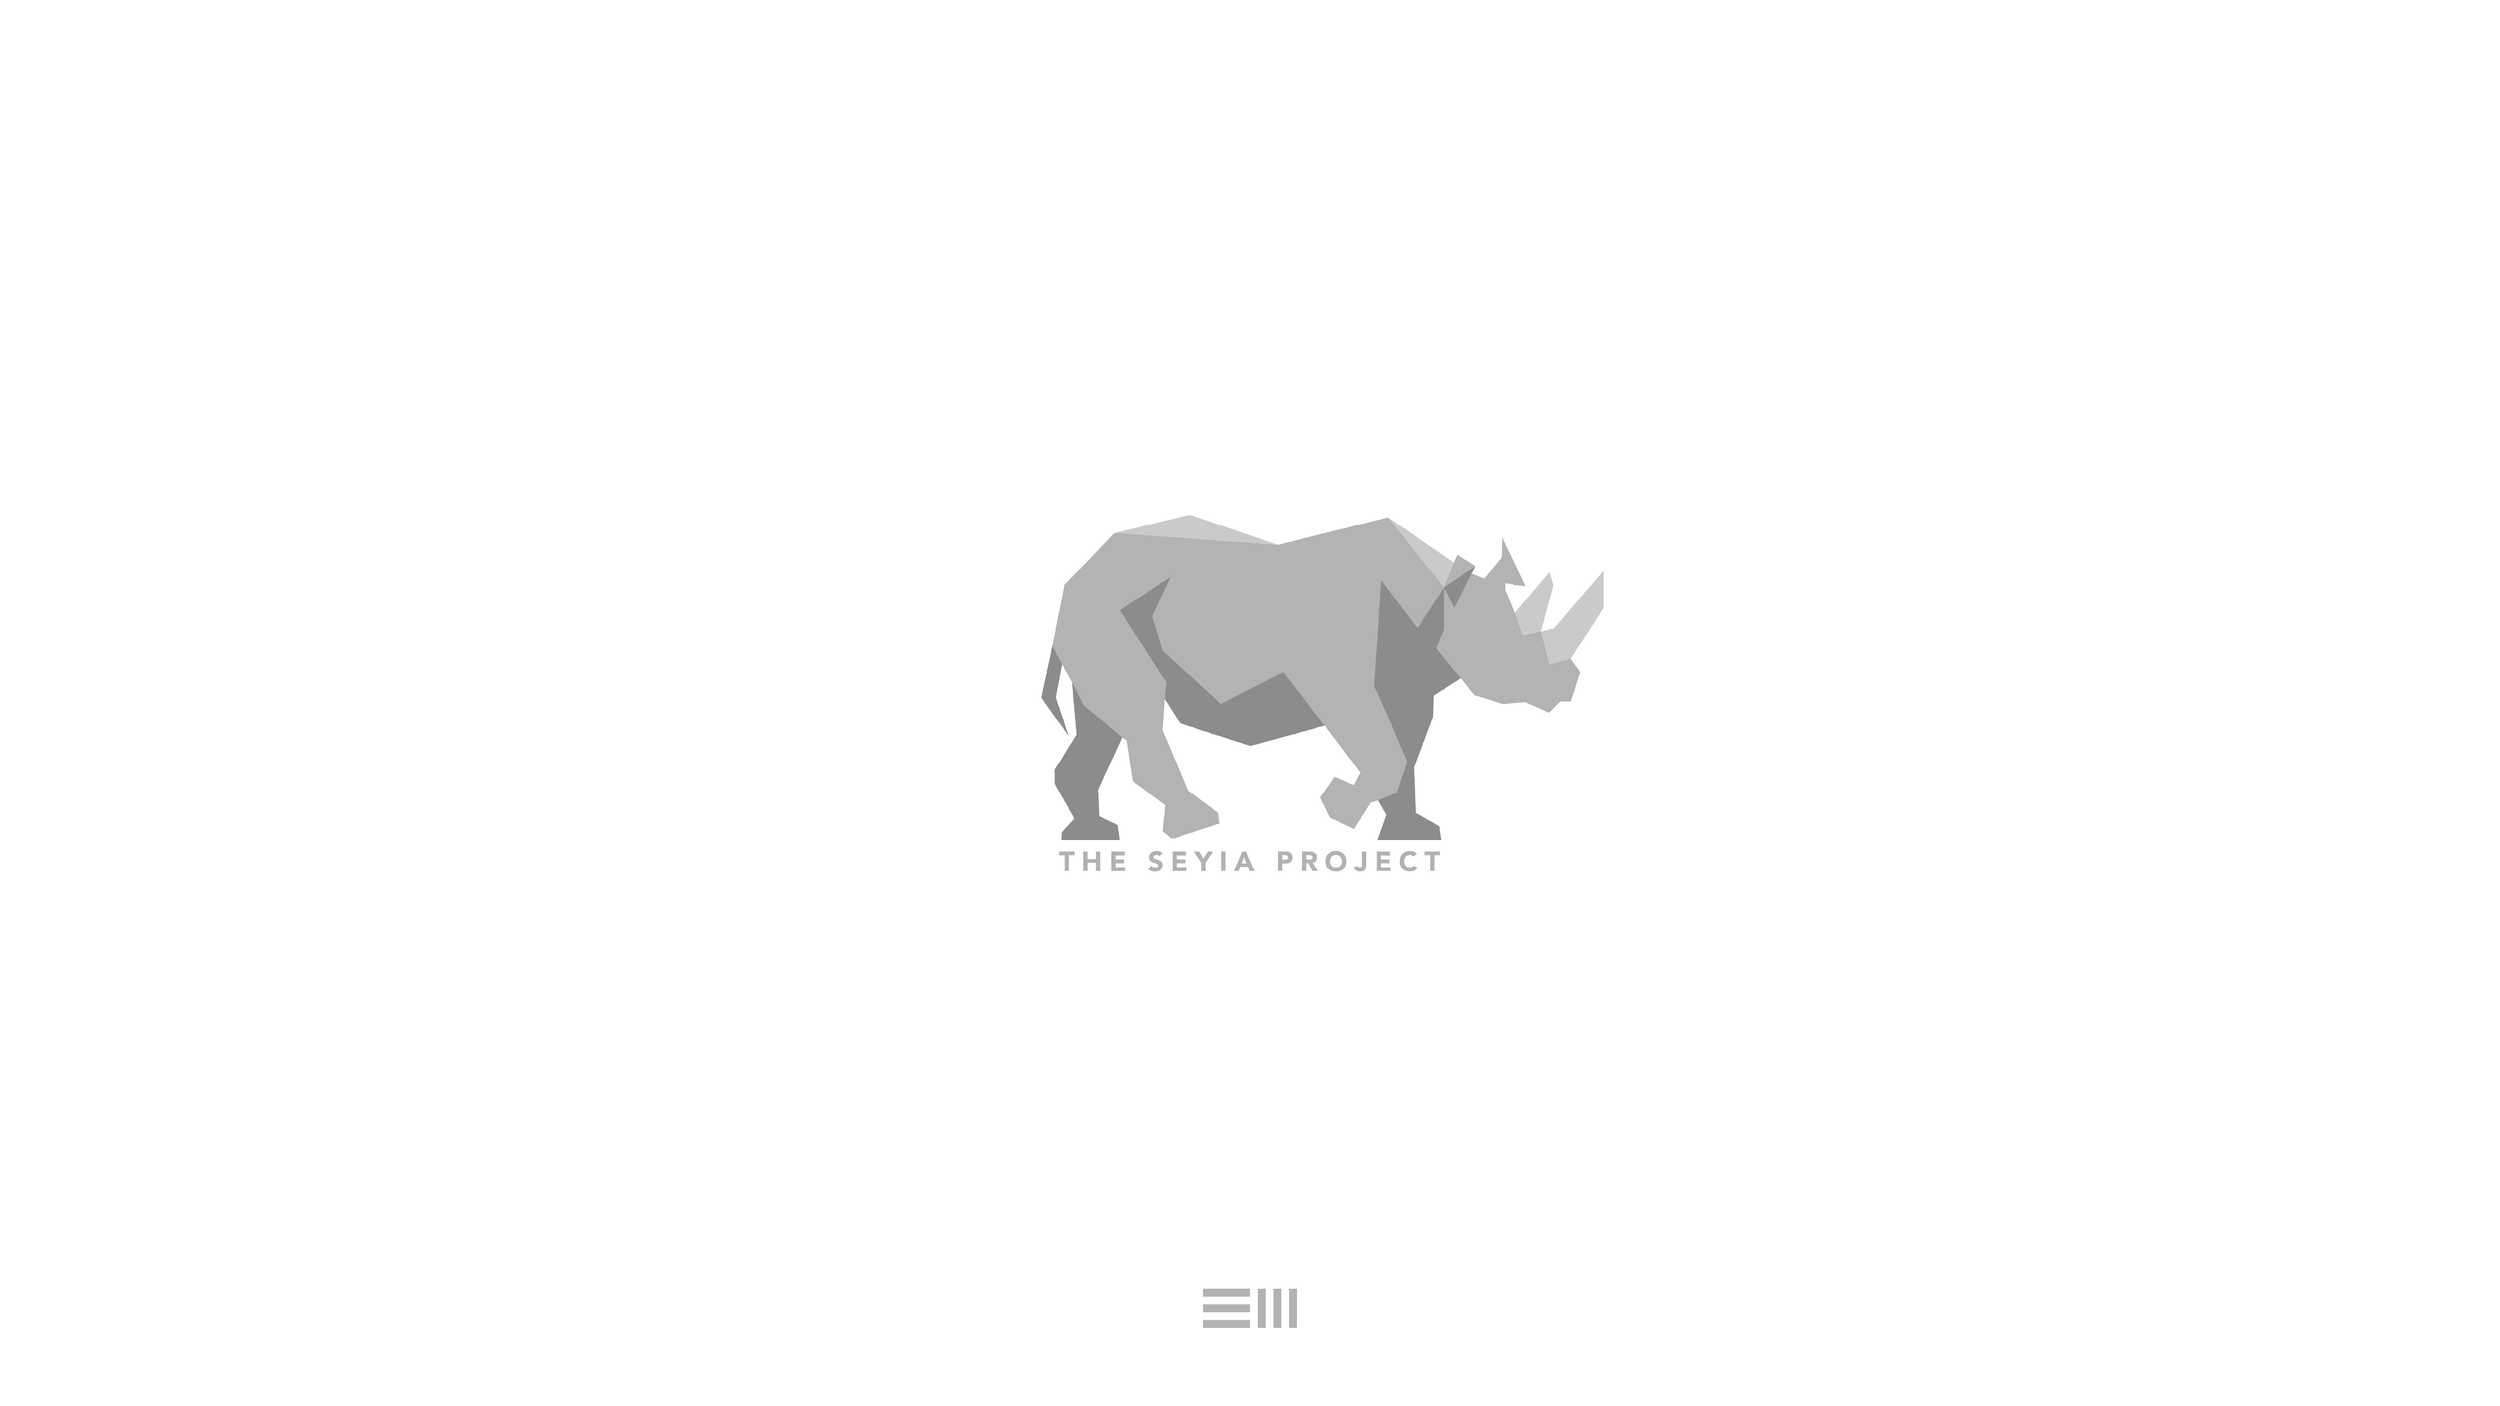 Seyia Project_Black Rhino_Design Options.png